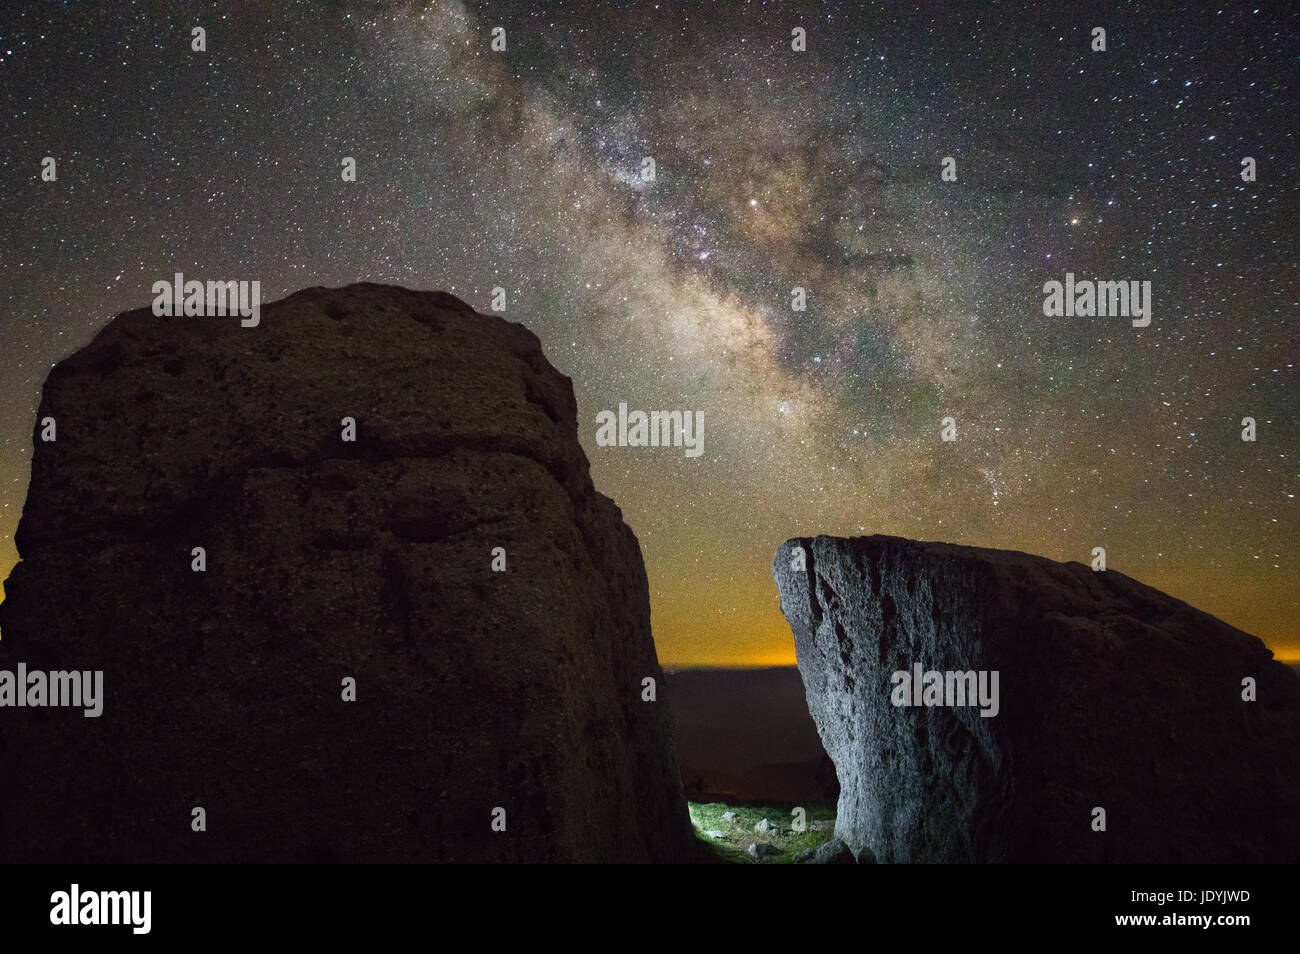 Ancient boulders litter the fields atop Spruce Knob, West Virginia's highest point, the Milky Way and stars - Stock Image